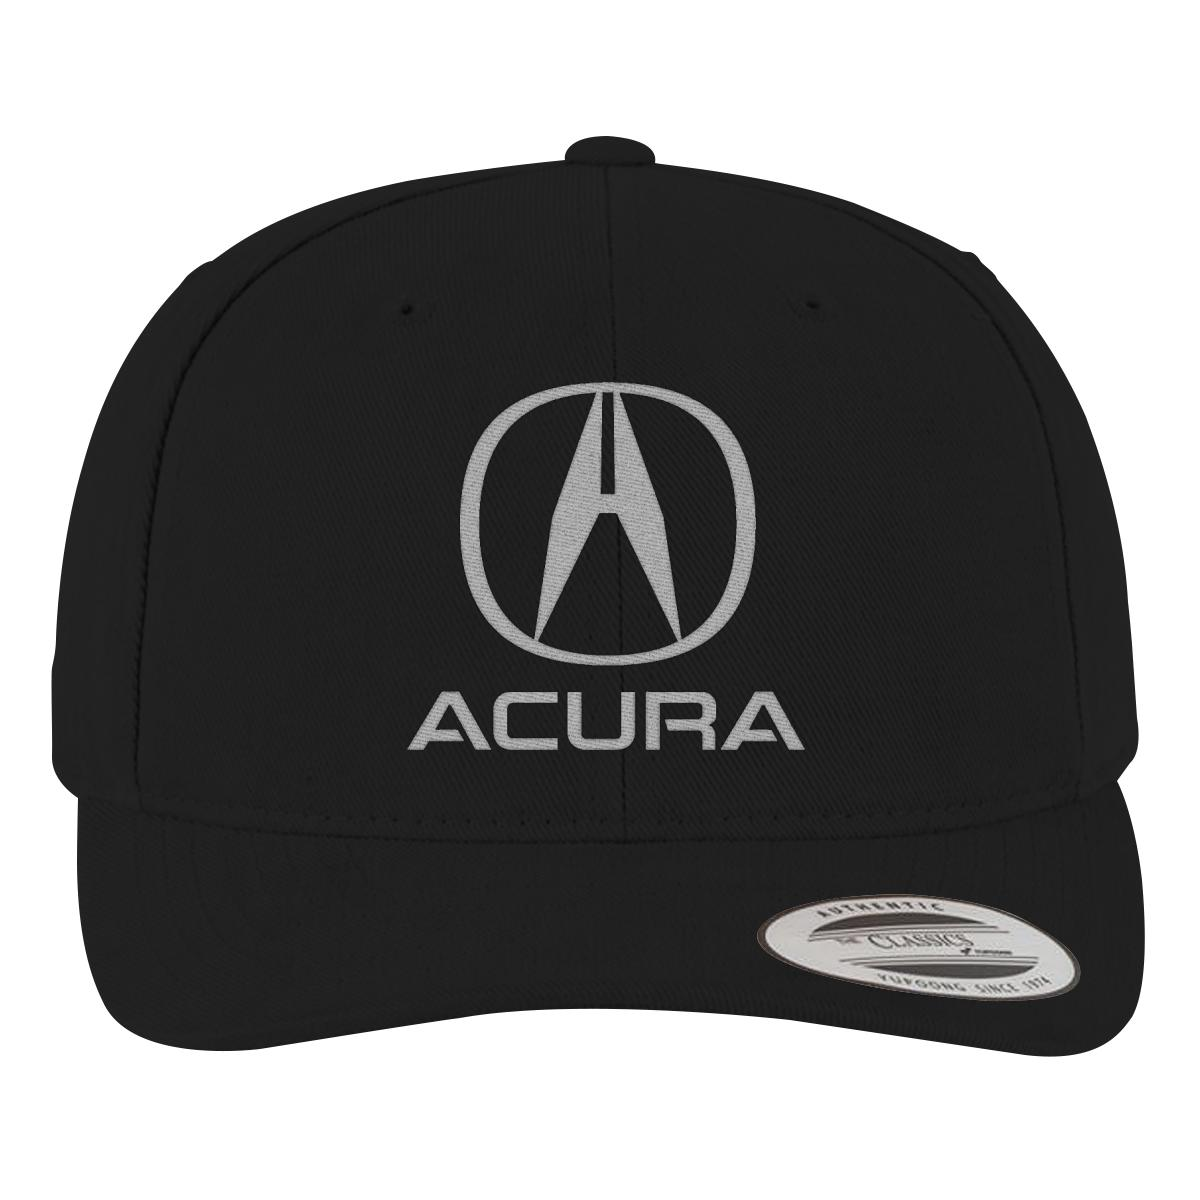 Acura Logo Brushed Cotton Twill Hat Embroidered Customoncom - Acura hat